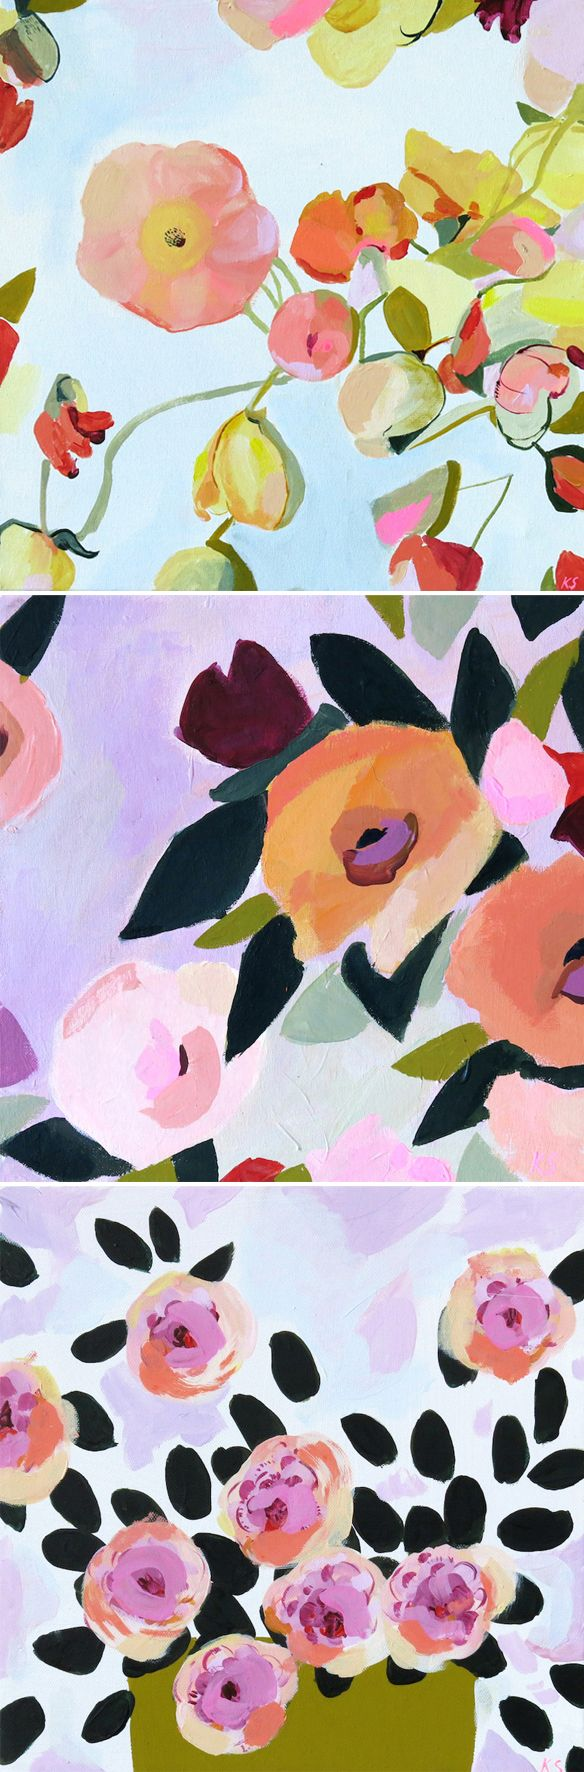 KT SMAIL paintings (avail on @buysomedamnart)